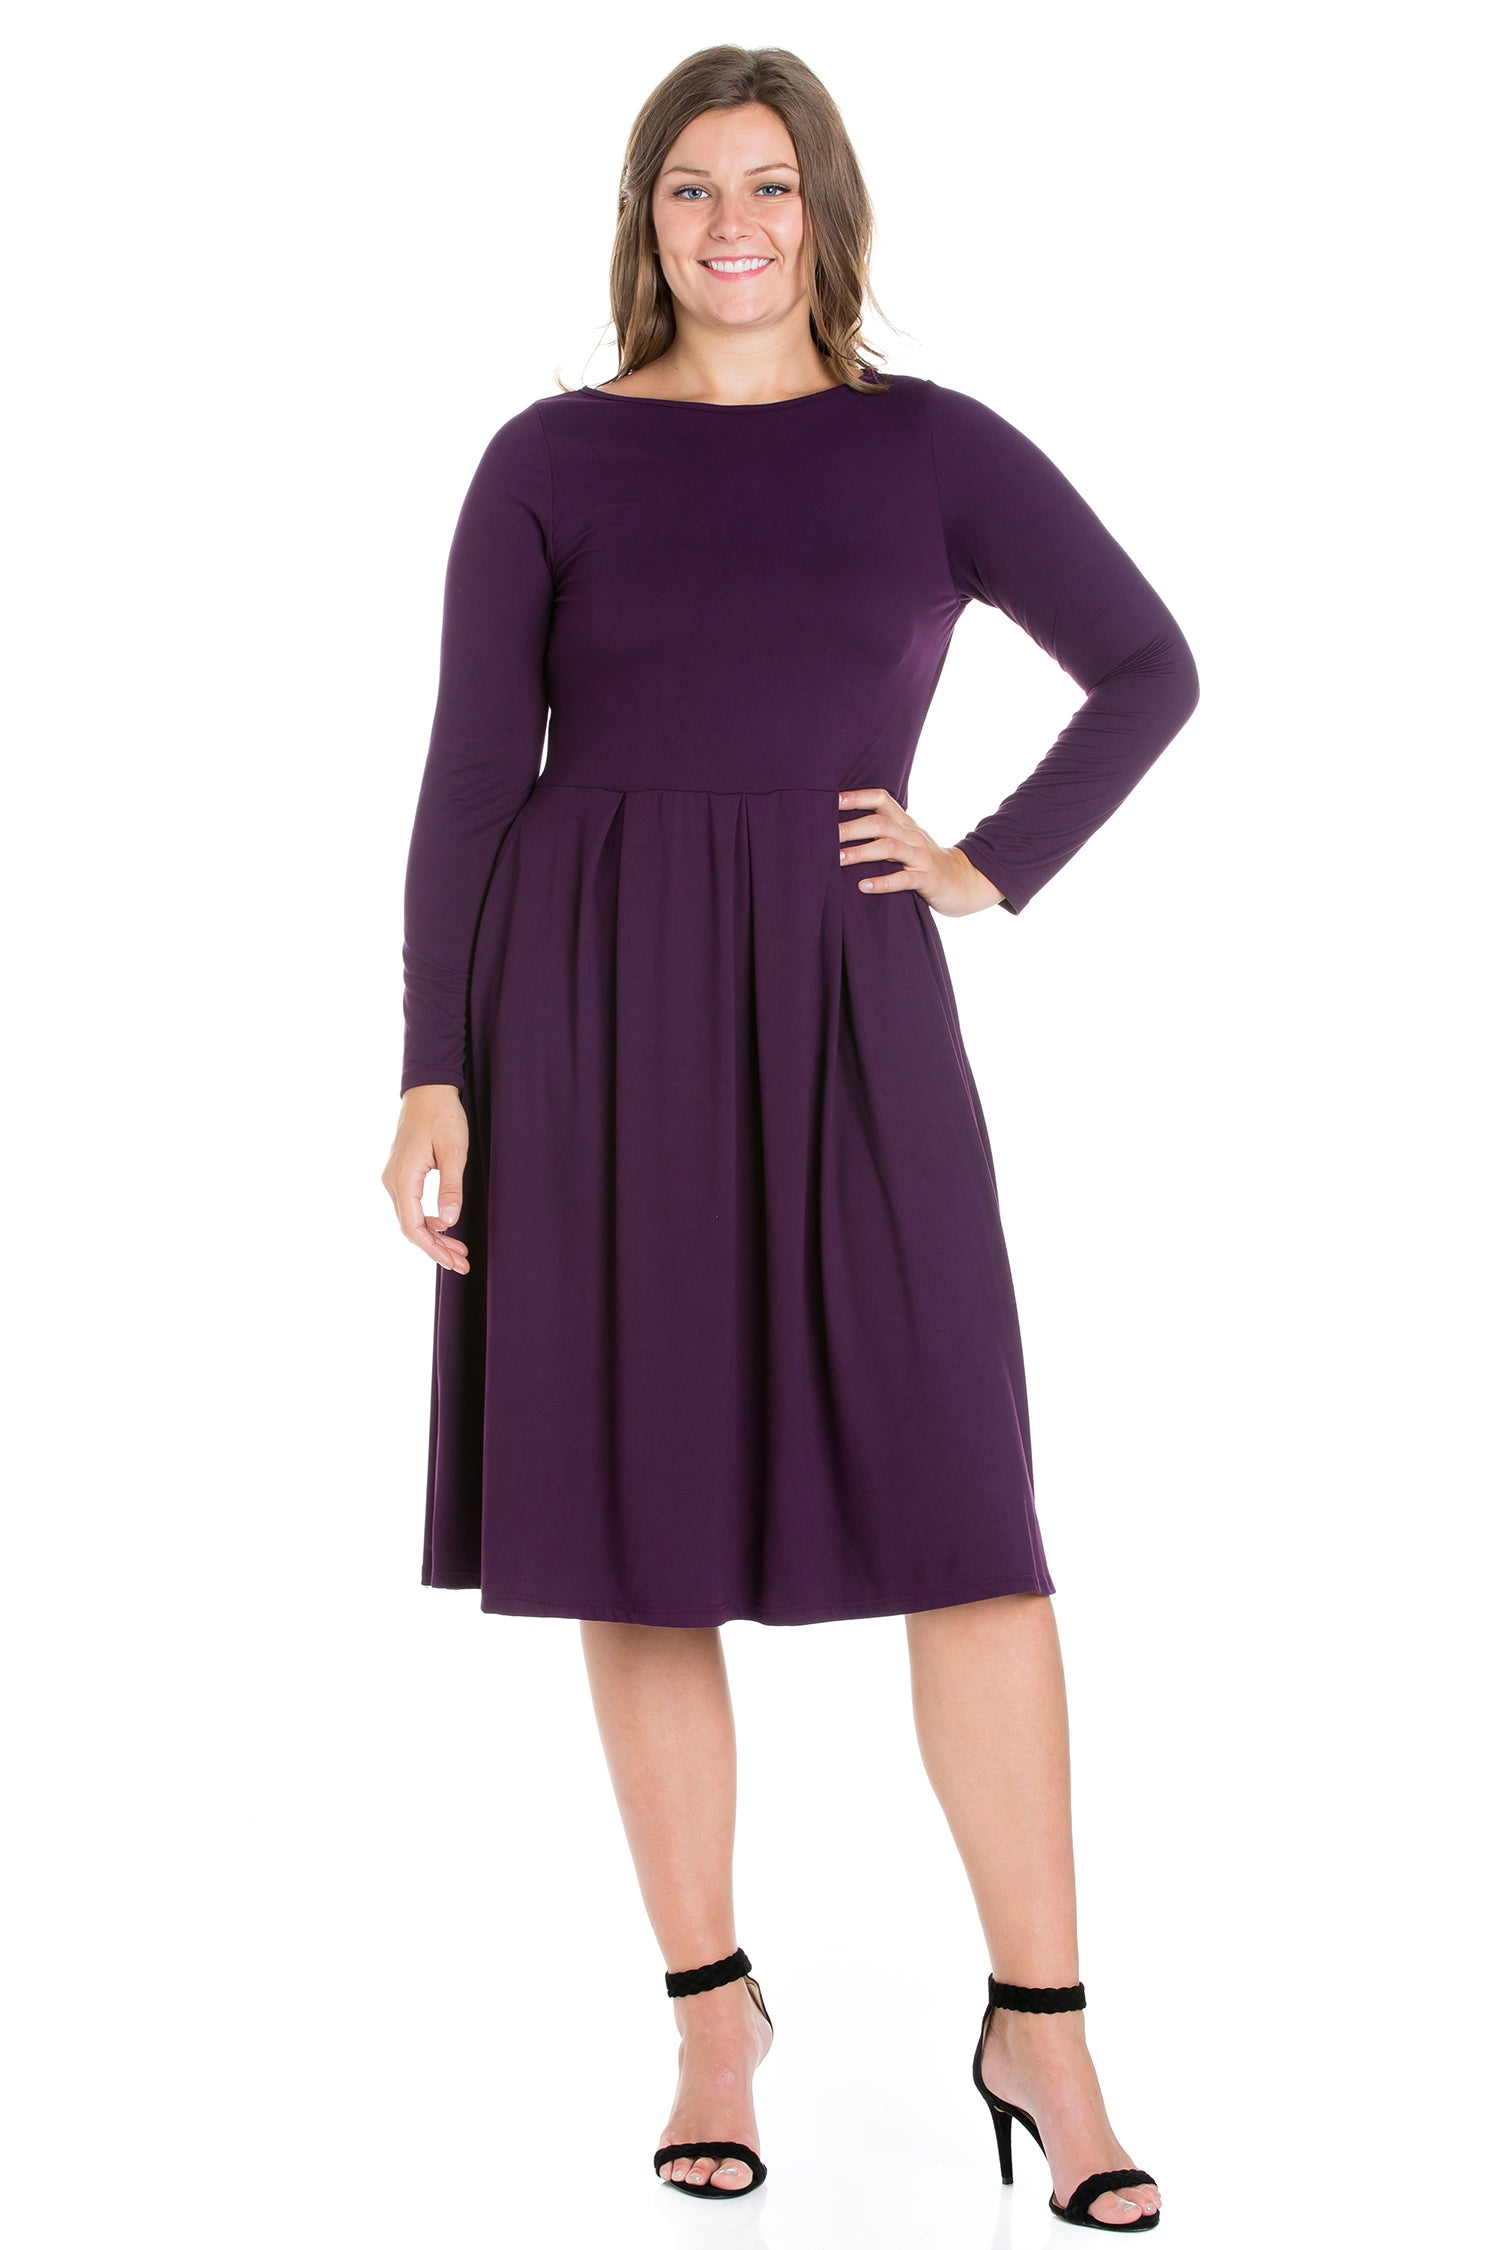 24seven Comfort Apparel Long Sleeve Fit and Flare Plus Size Midi Dress-DRESSES-24Seven Comfort Apparel-PURPLE-1X-24/7 Comfort Apparel